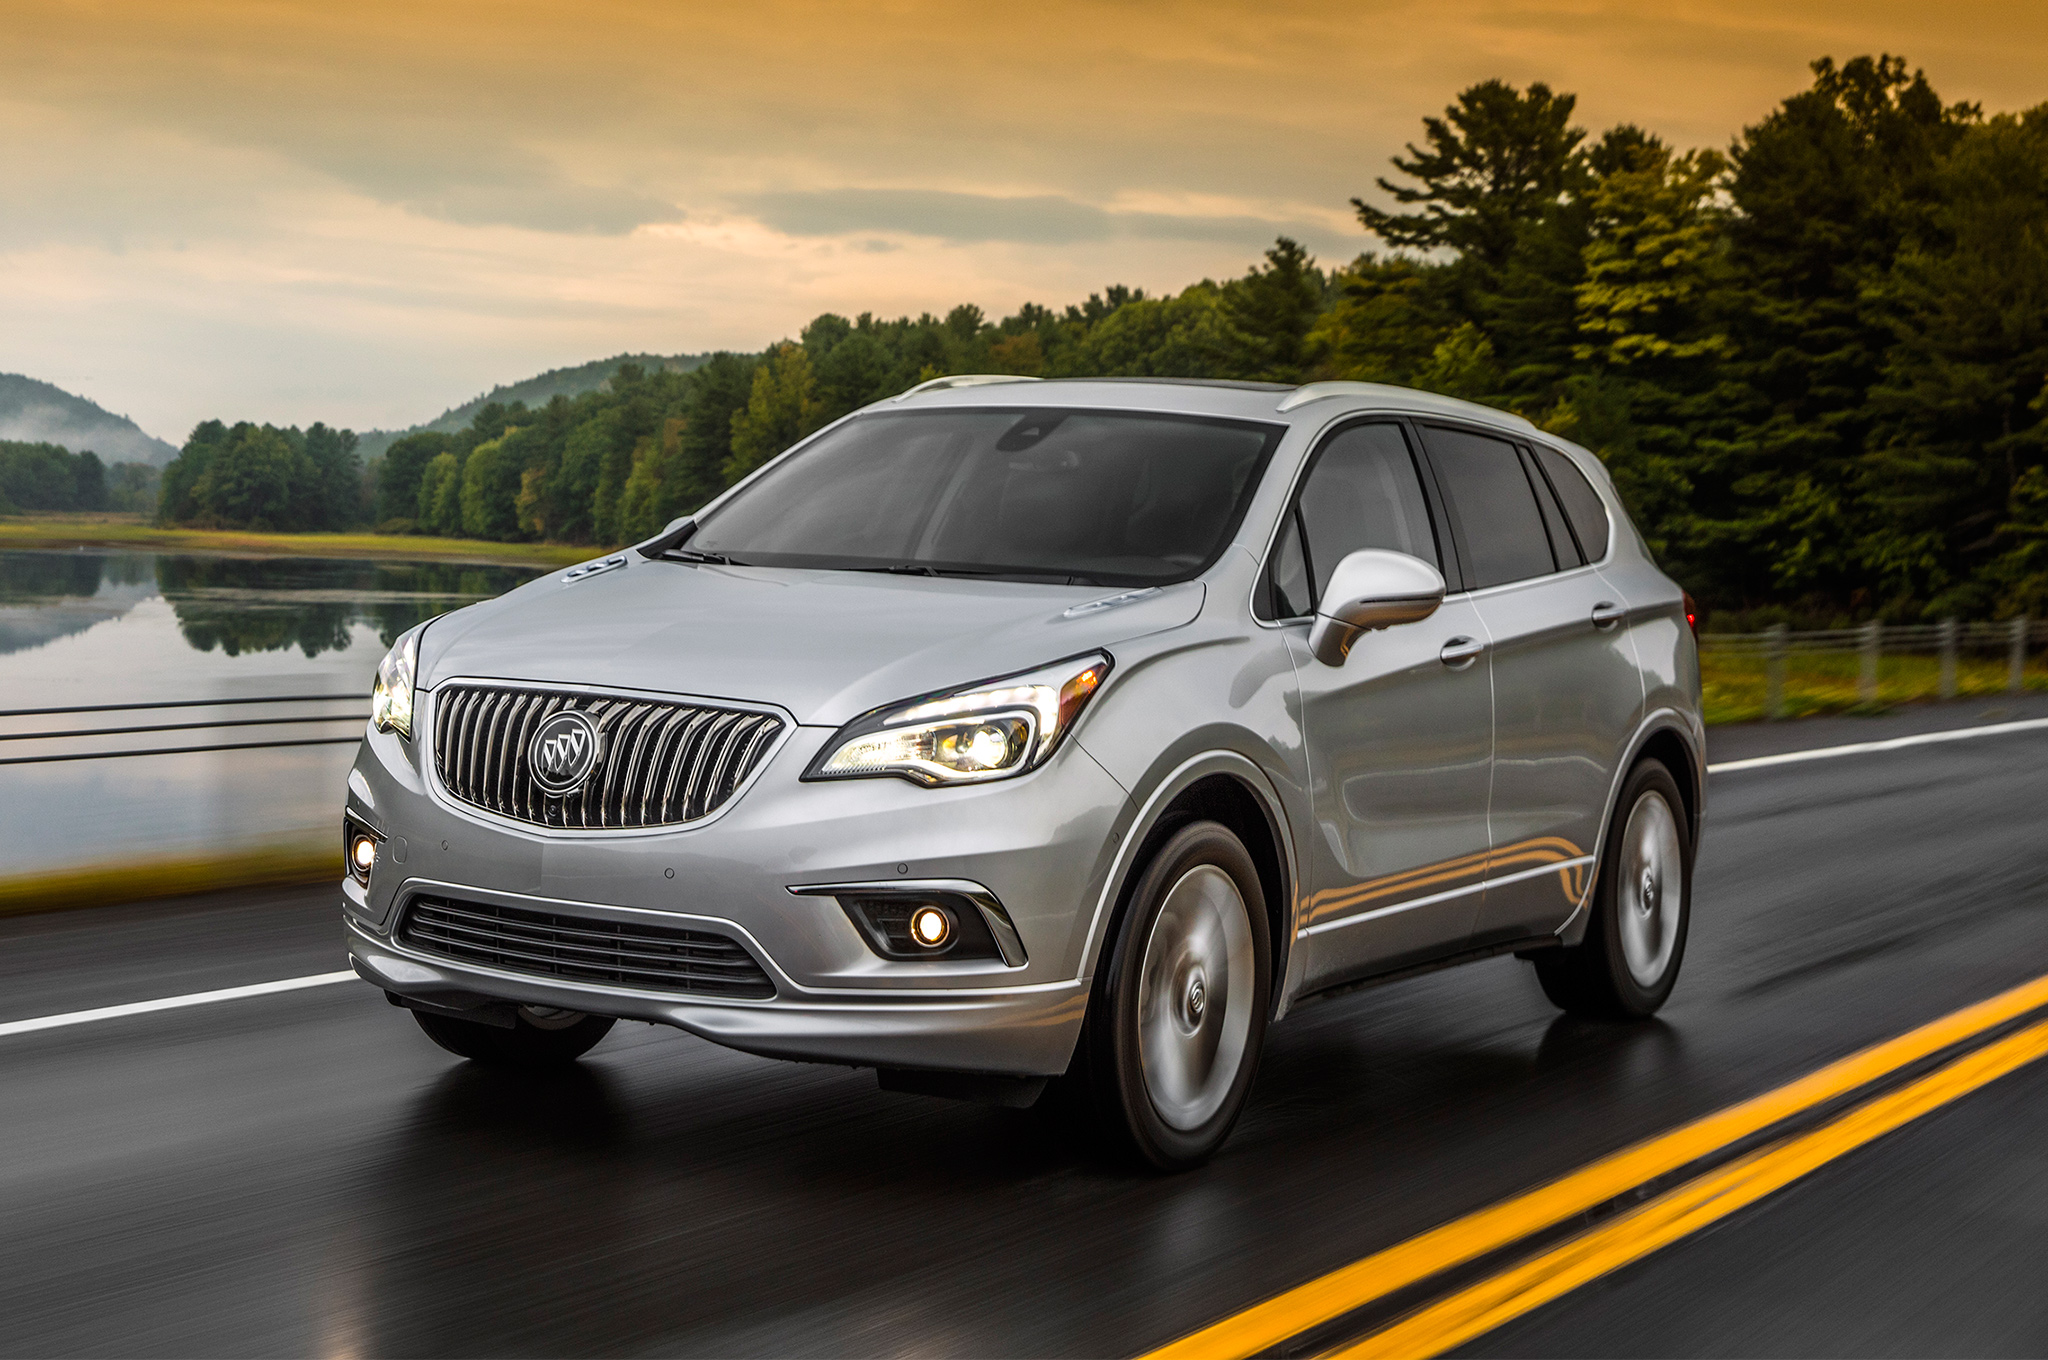 2017 Buick Envision: Safe but Stylish